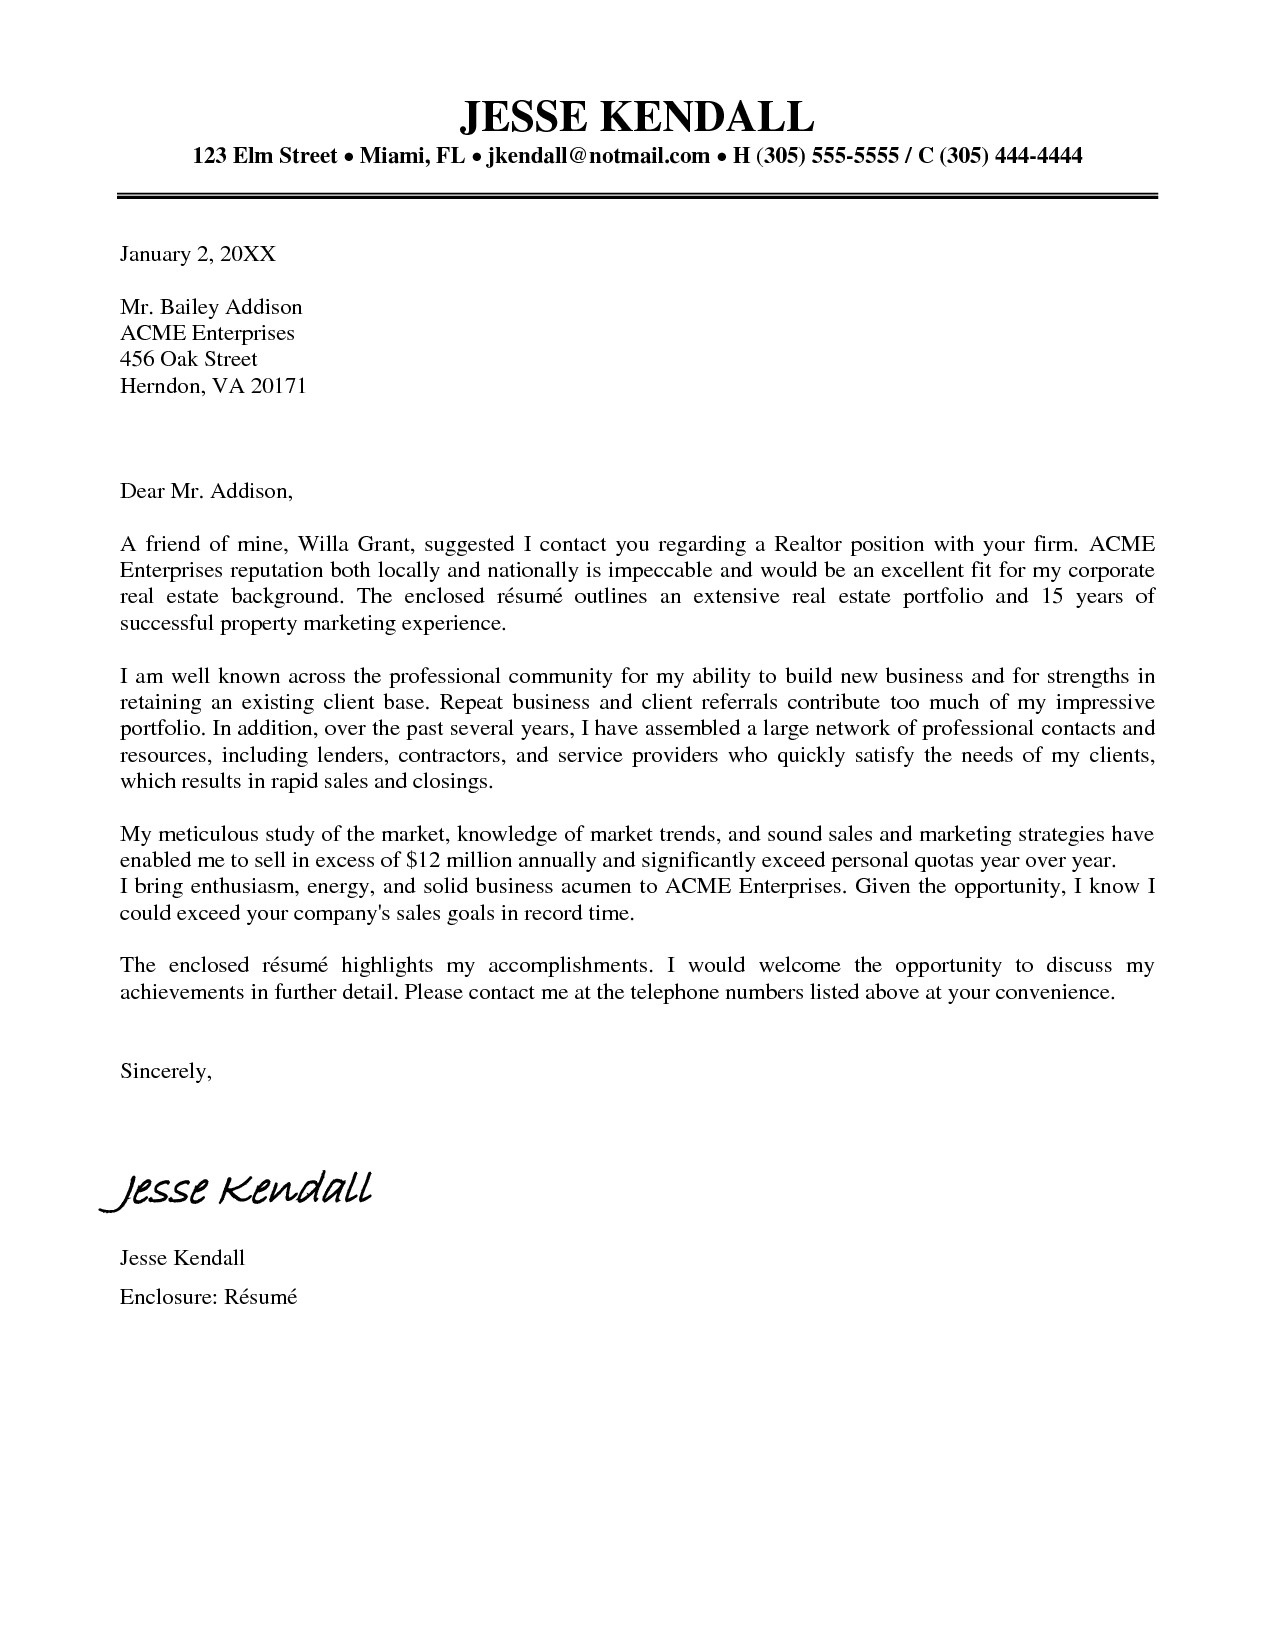 Real Estate Introduction Letter Template Collection Letter - Real-estate-associate-cover-letter